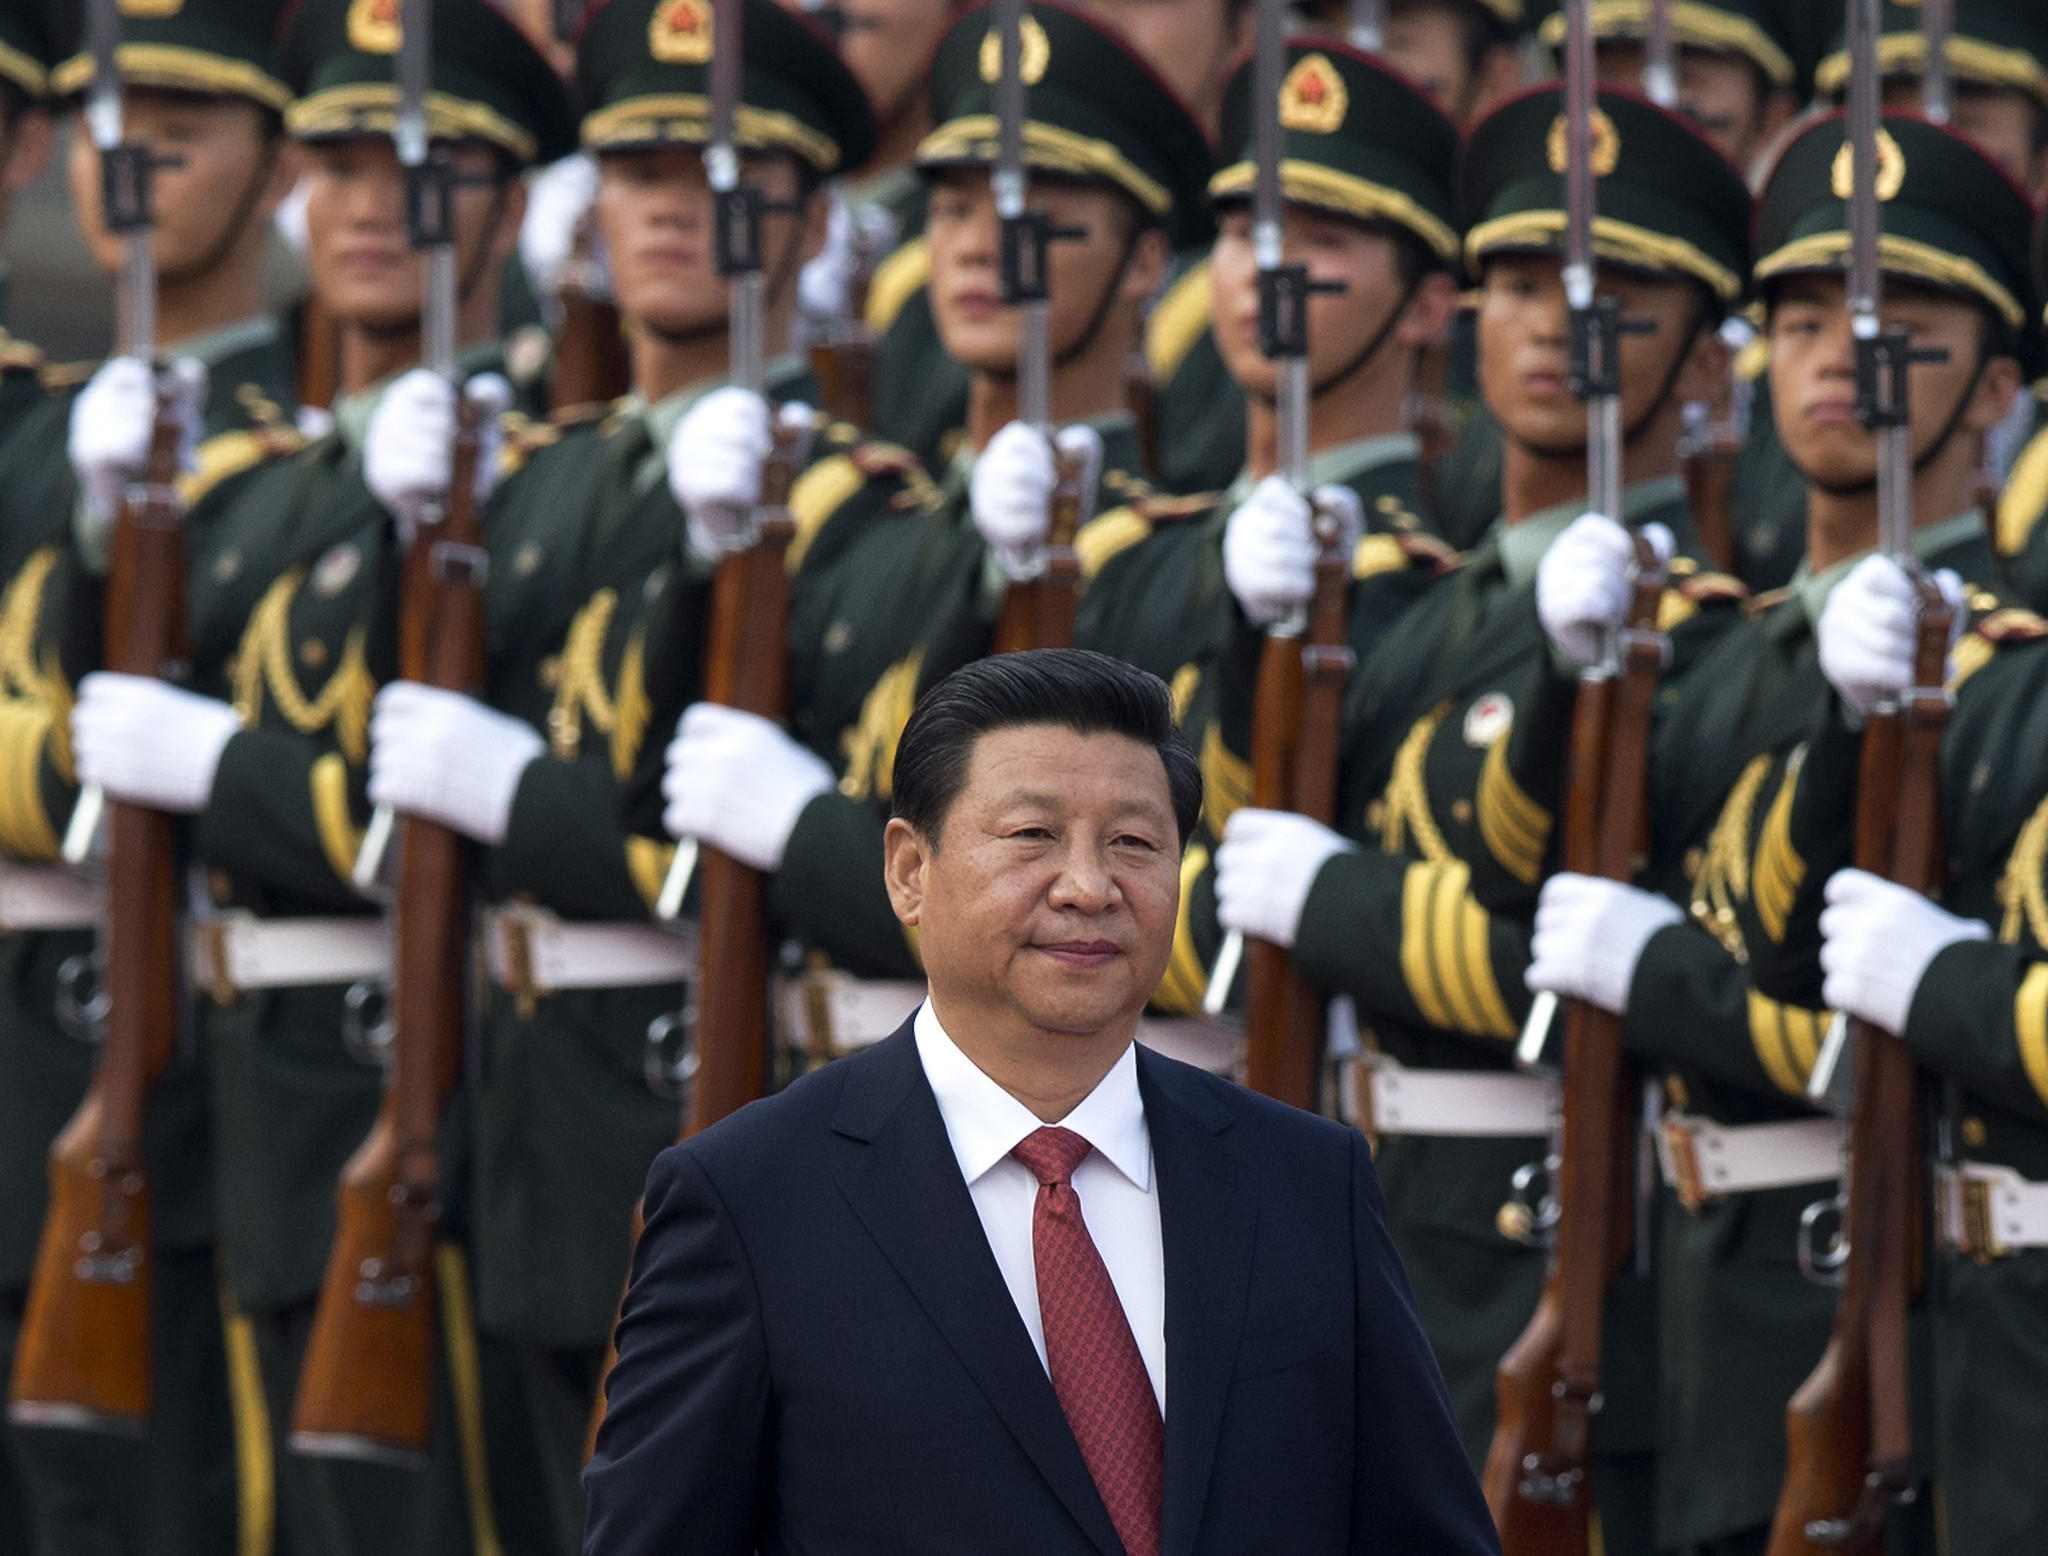 Chinese President Xi Jinping inspects a guard of honor outside the Great Hall of the People in Beijing.